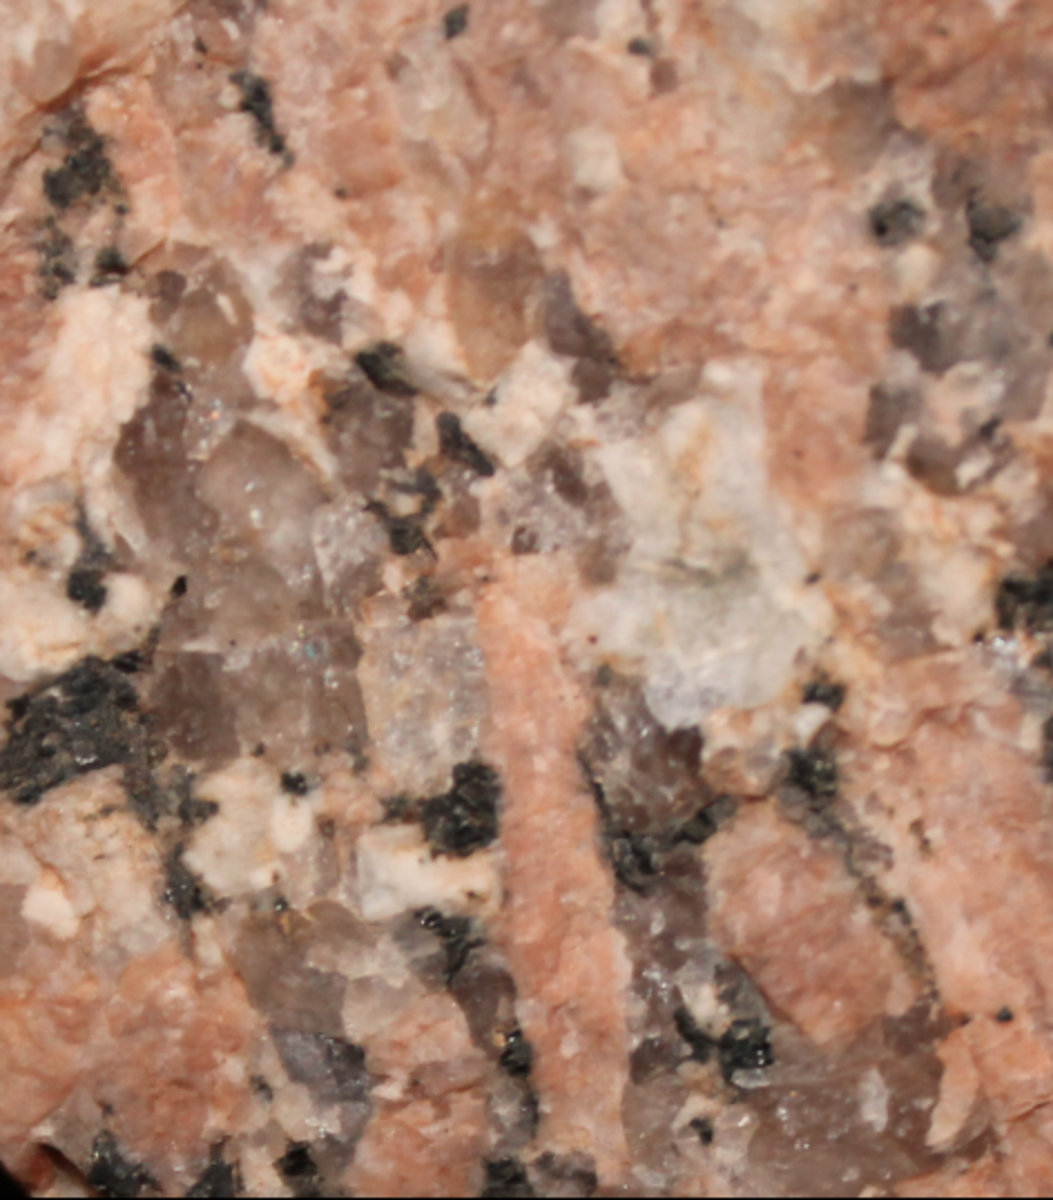 Major Granitic Minerals in the Enchanted Rock: Grey-Quartz...     Pink-Orthoclase...    White- Plagioclase... Black-Hornblende